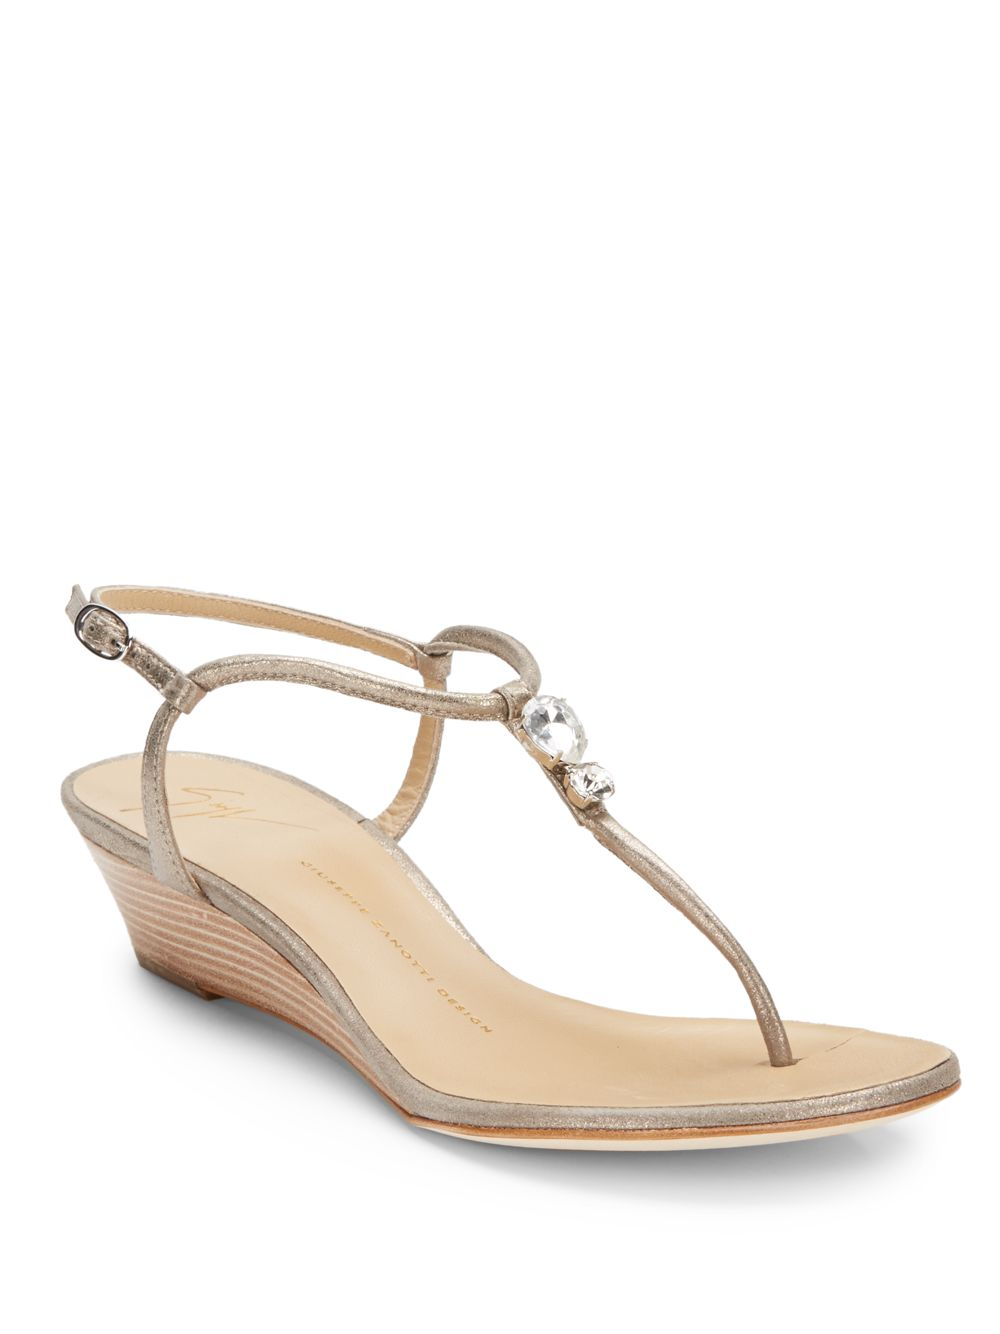 Lyst - Giuseppe Zanotti Jeweled Low Wedge Thong Sandals in Natural